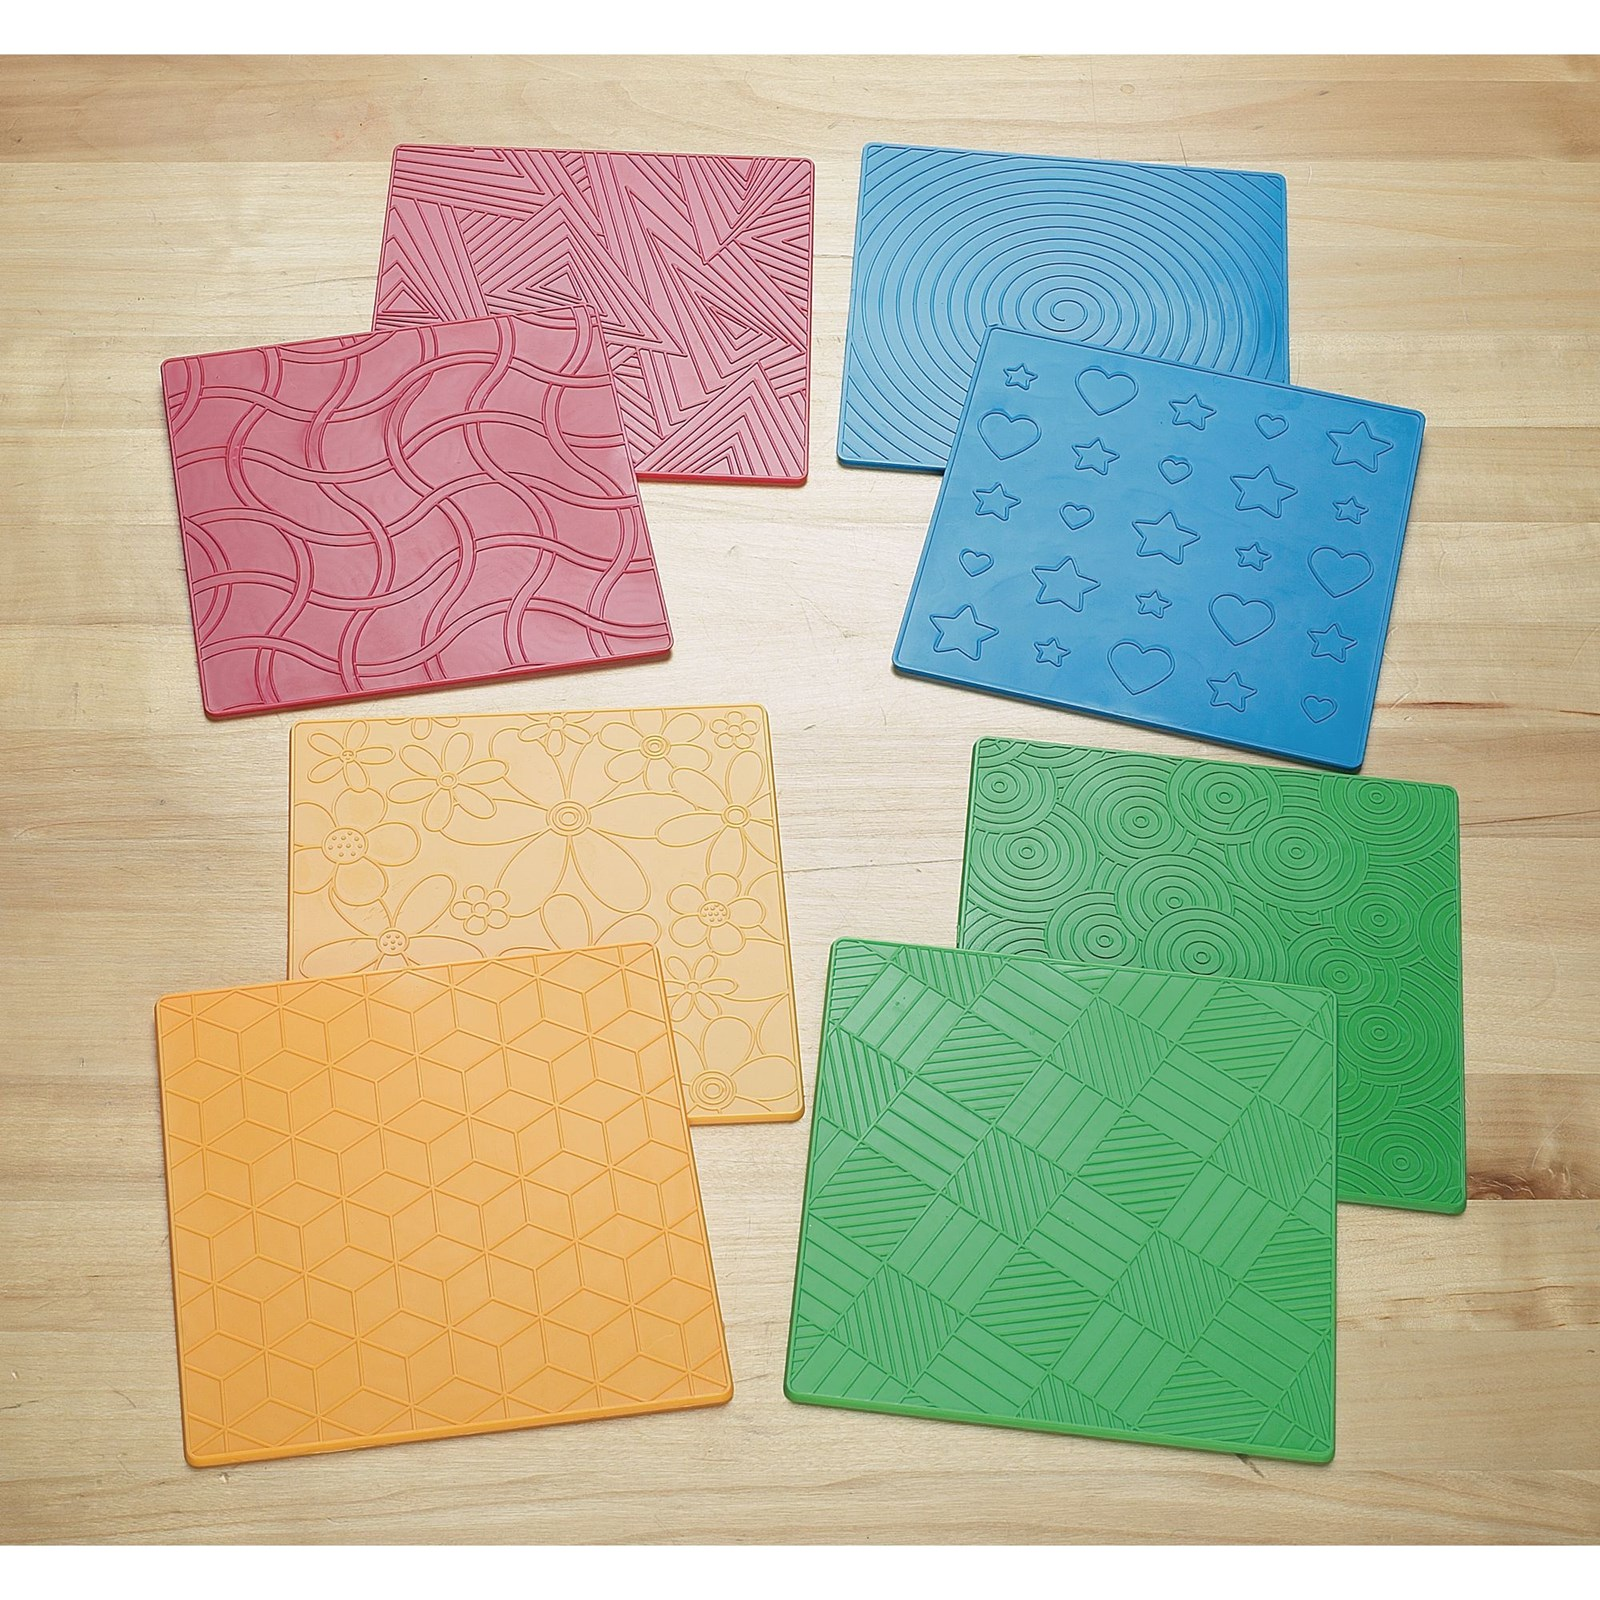 Rubbing and Embossing Plates